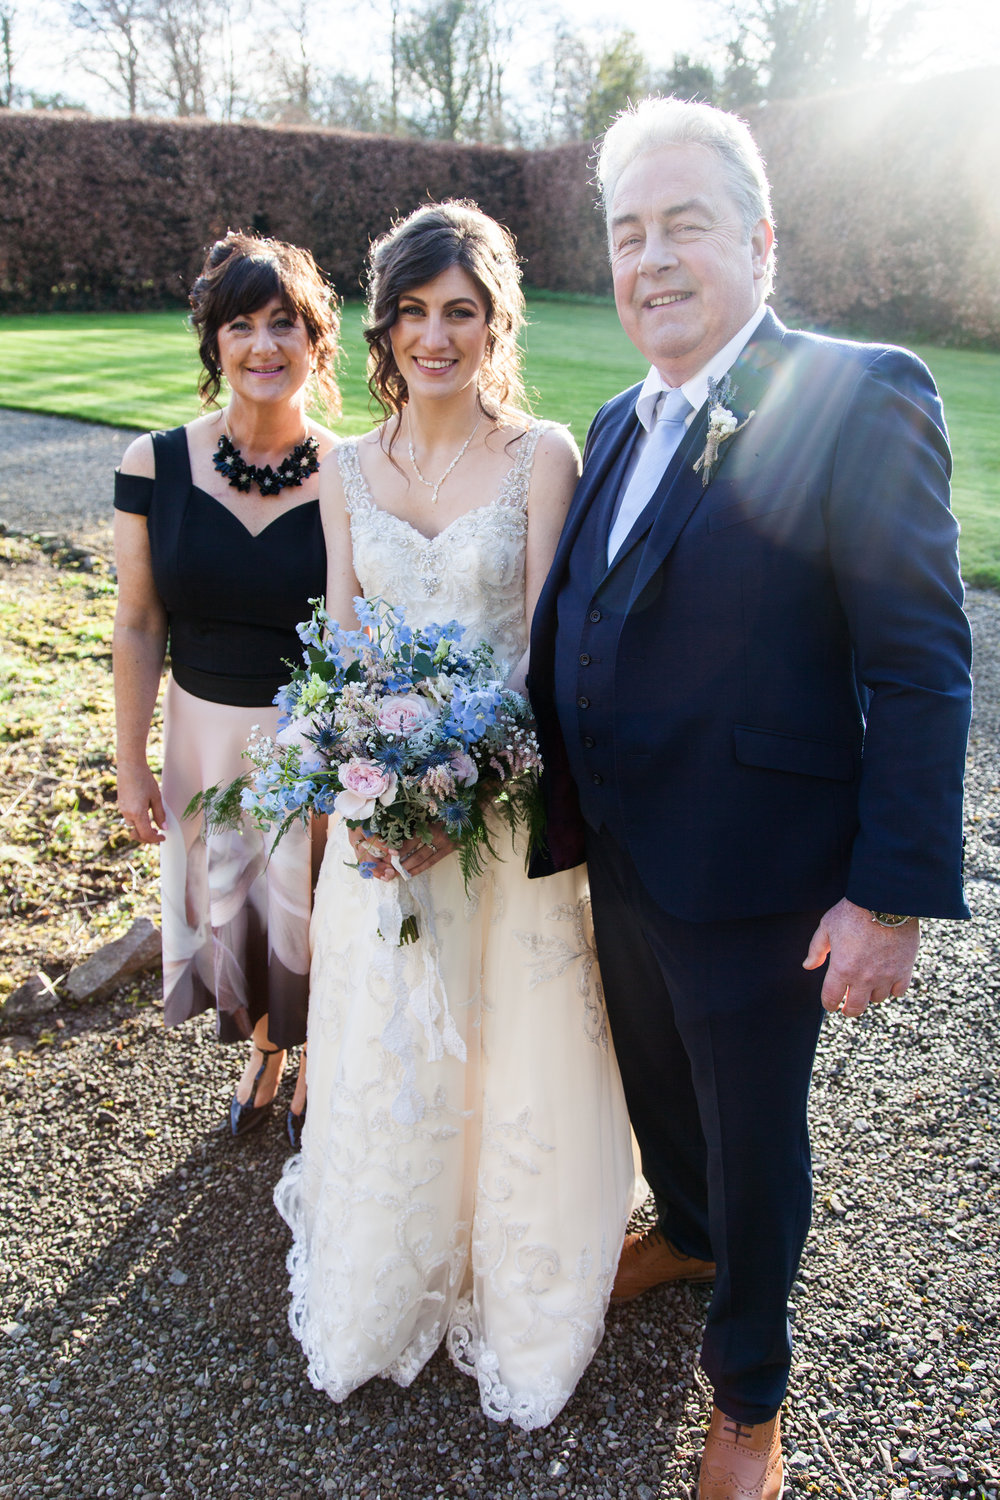 Sinead_Conor_social_media_wedding-86.jpg